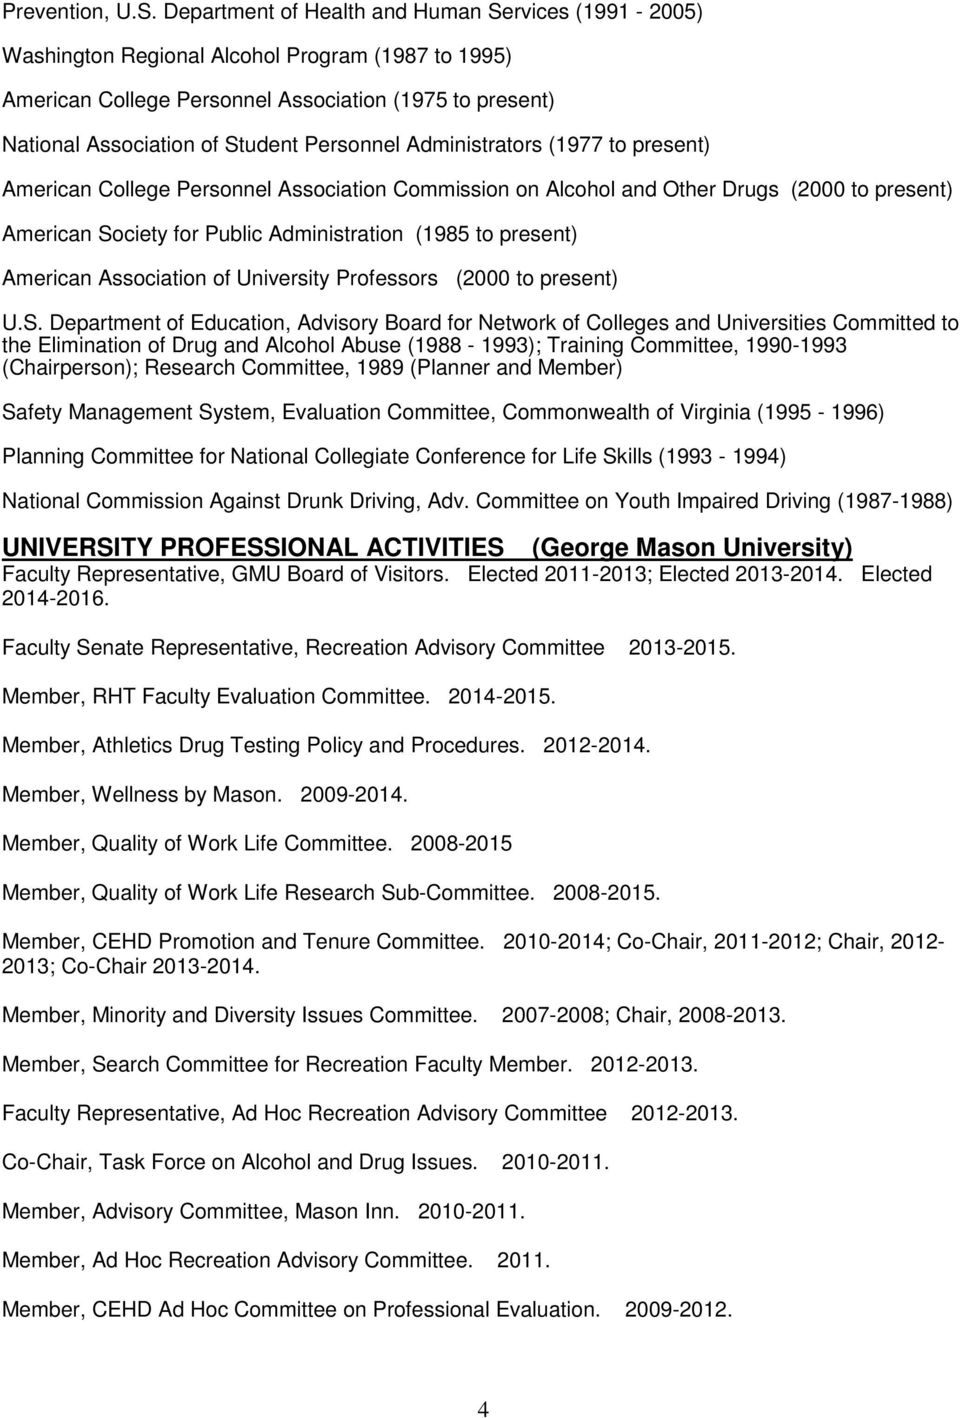 Personnel Administrators (1977 to present) American College Personnel Association Commission on Alcohol and Other Drugs (2000 to present) American Society for Public Administration (1985 to present)